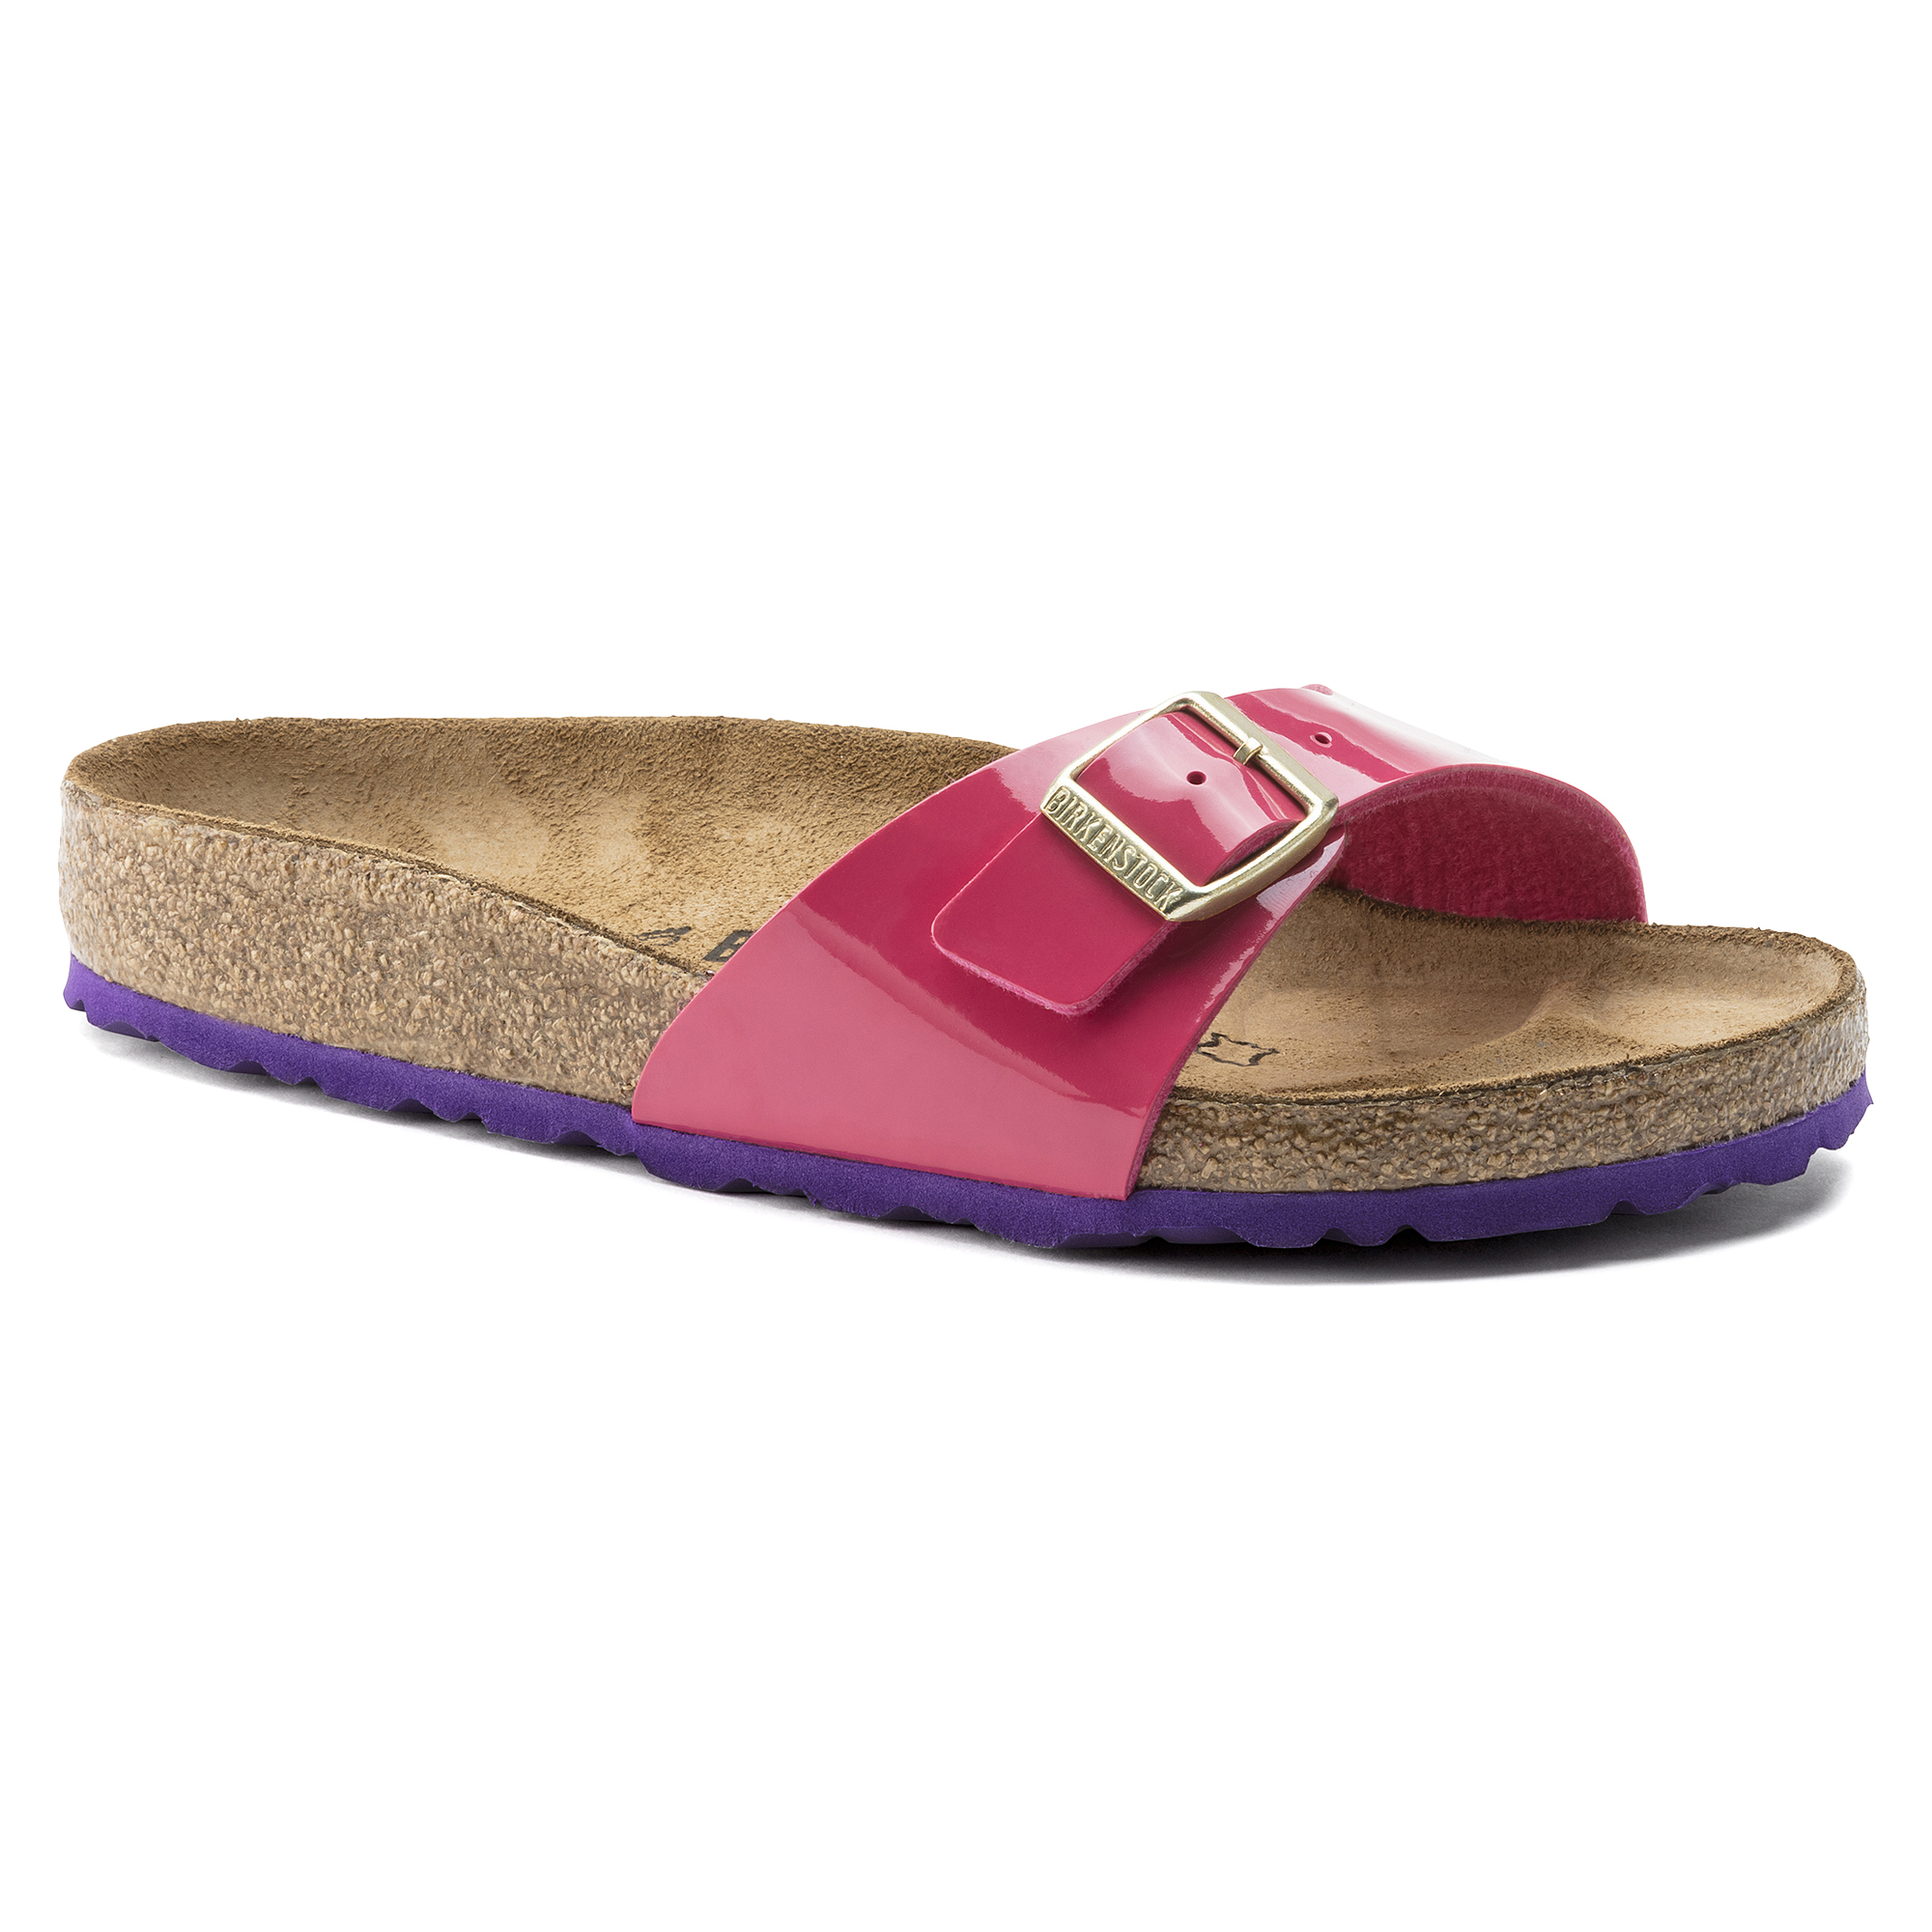 Birkenstock Madrid Womens Sandals in Pink